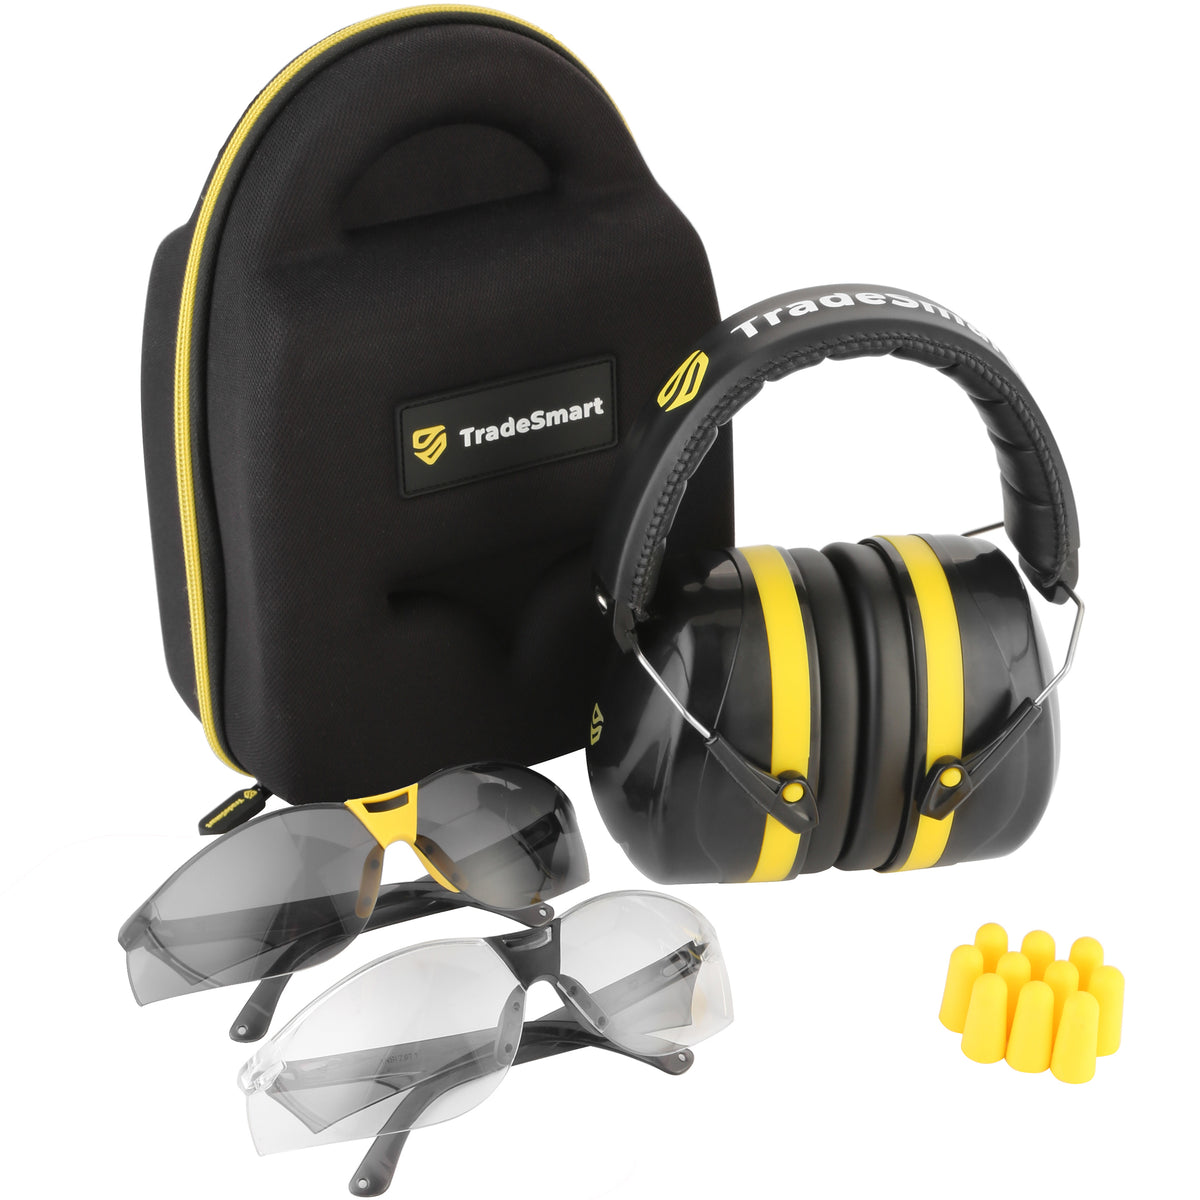 PROFESSIONAL - Yellow Earmuffs, Indoor/Outdoor Safety Glasses, Protective Case & Earplugs